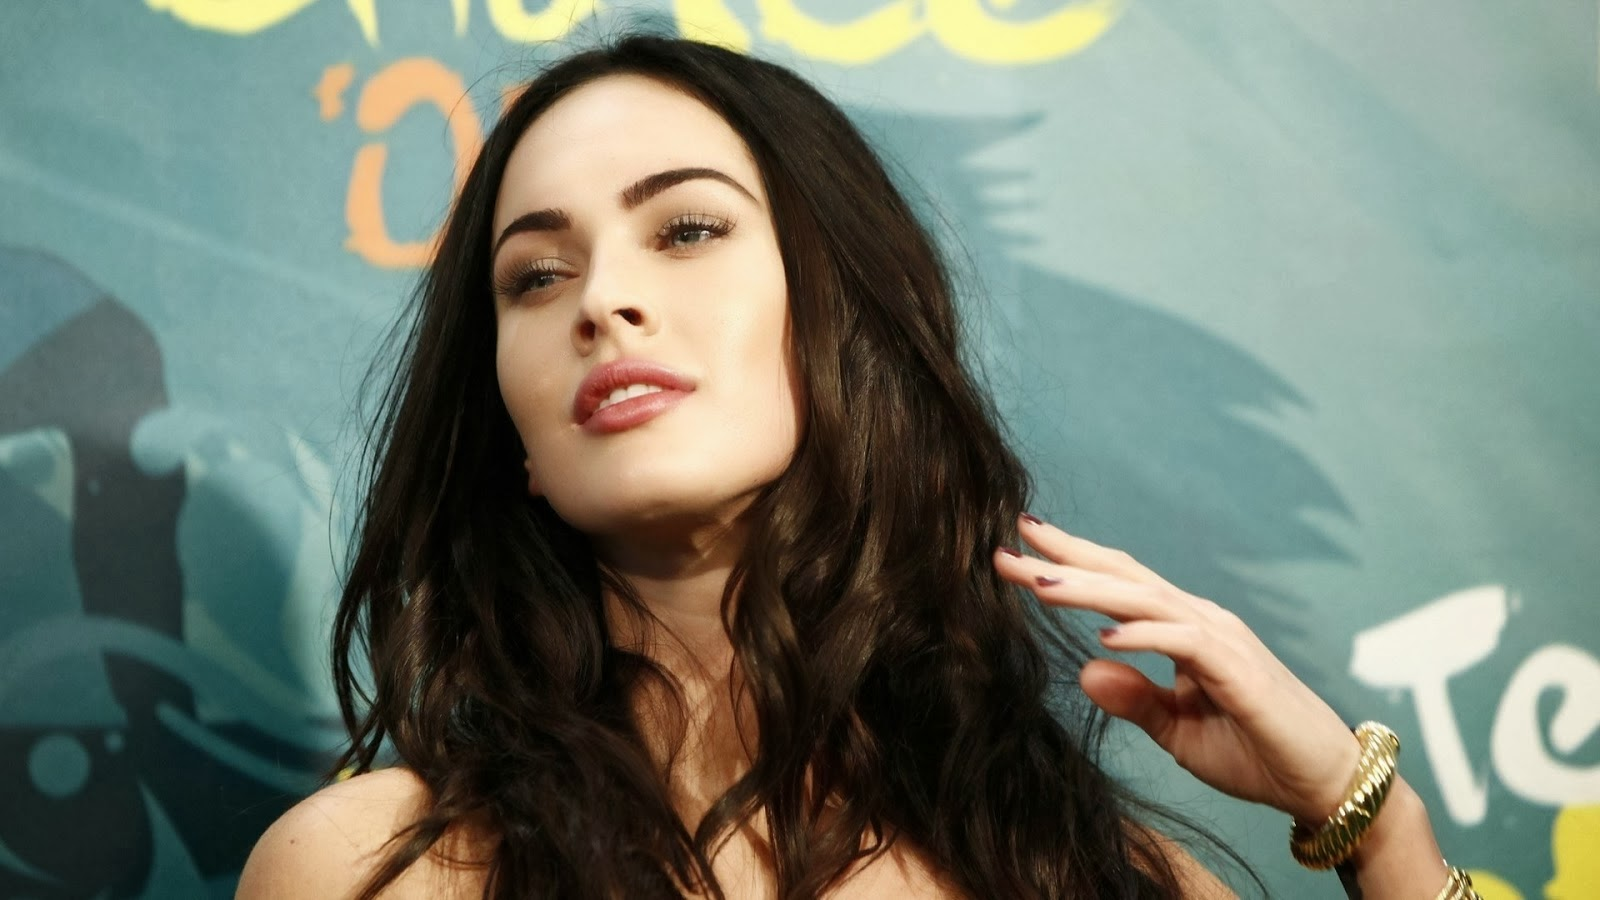 all hot informations: download megan fox hd wallpapers in 1080p